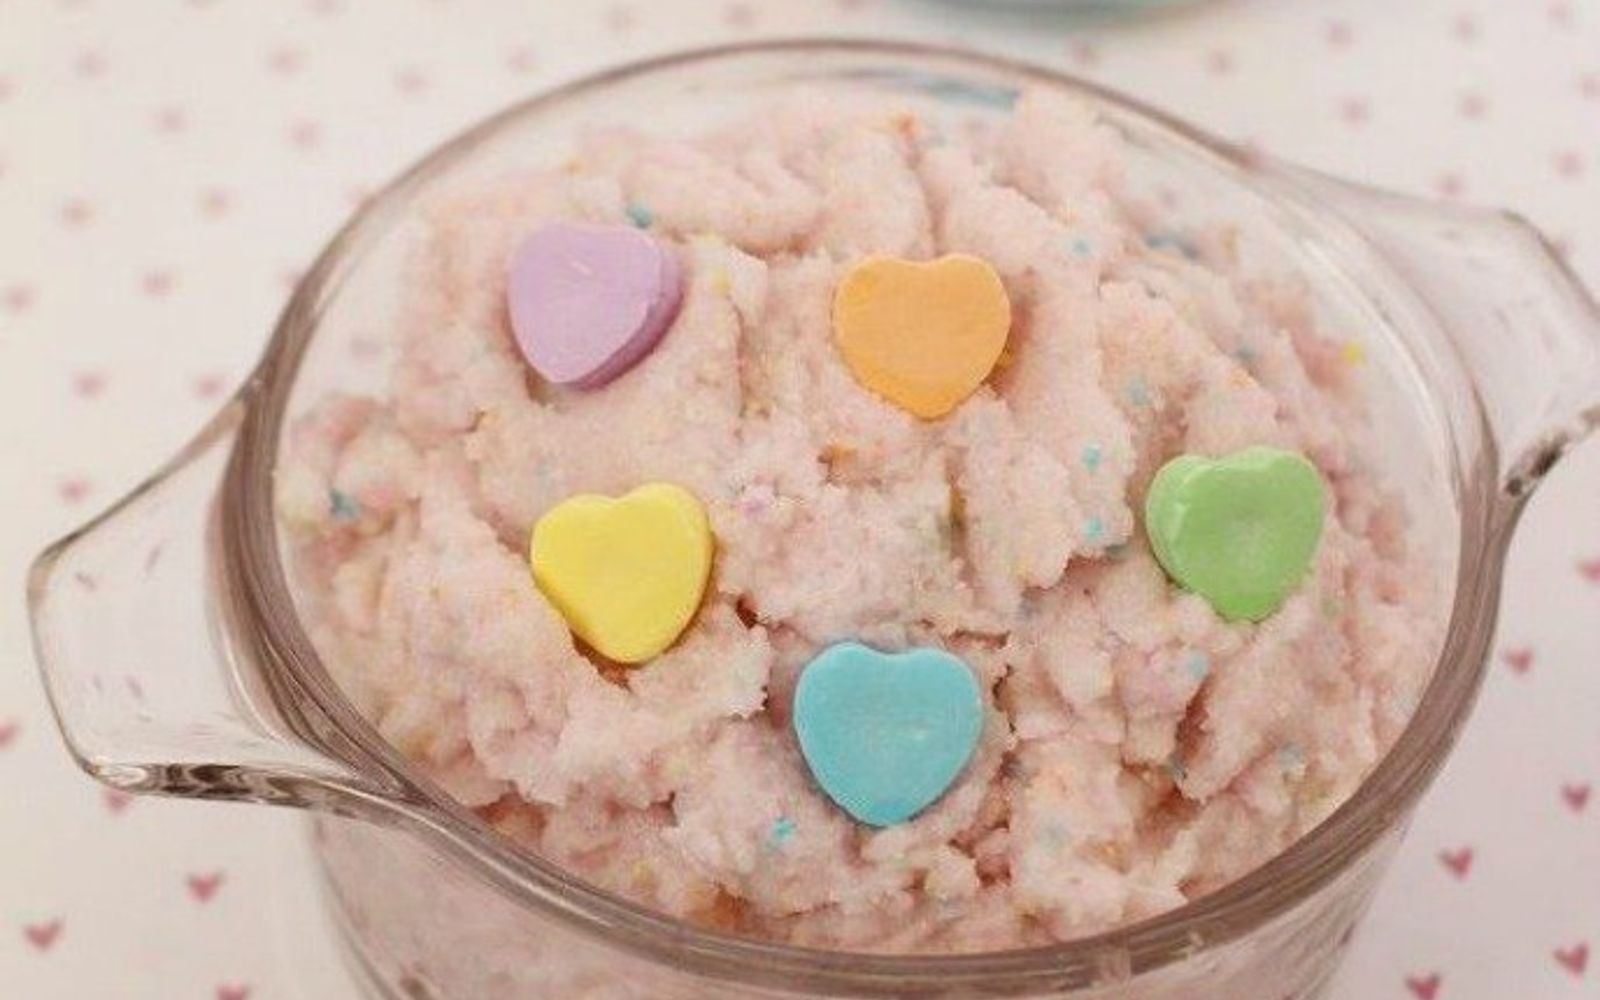 s 20 heartfelt valentine s day gifts for under 20, seasonal holiday decor, valentines day ideas, Or make a colorful sugar scrub